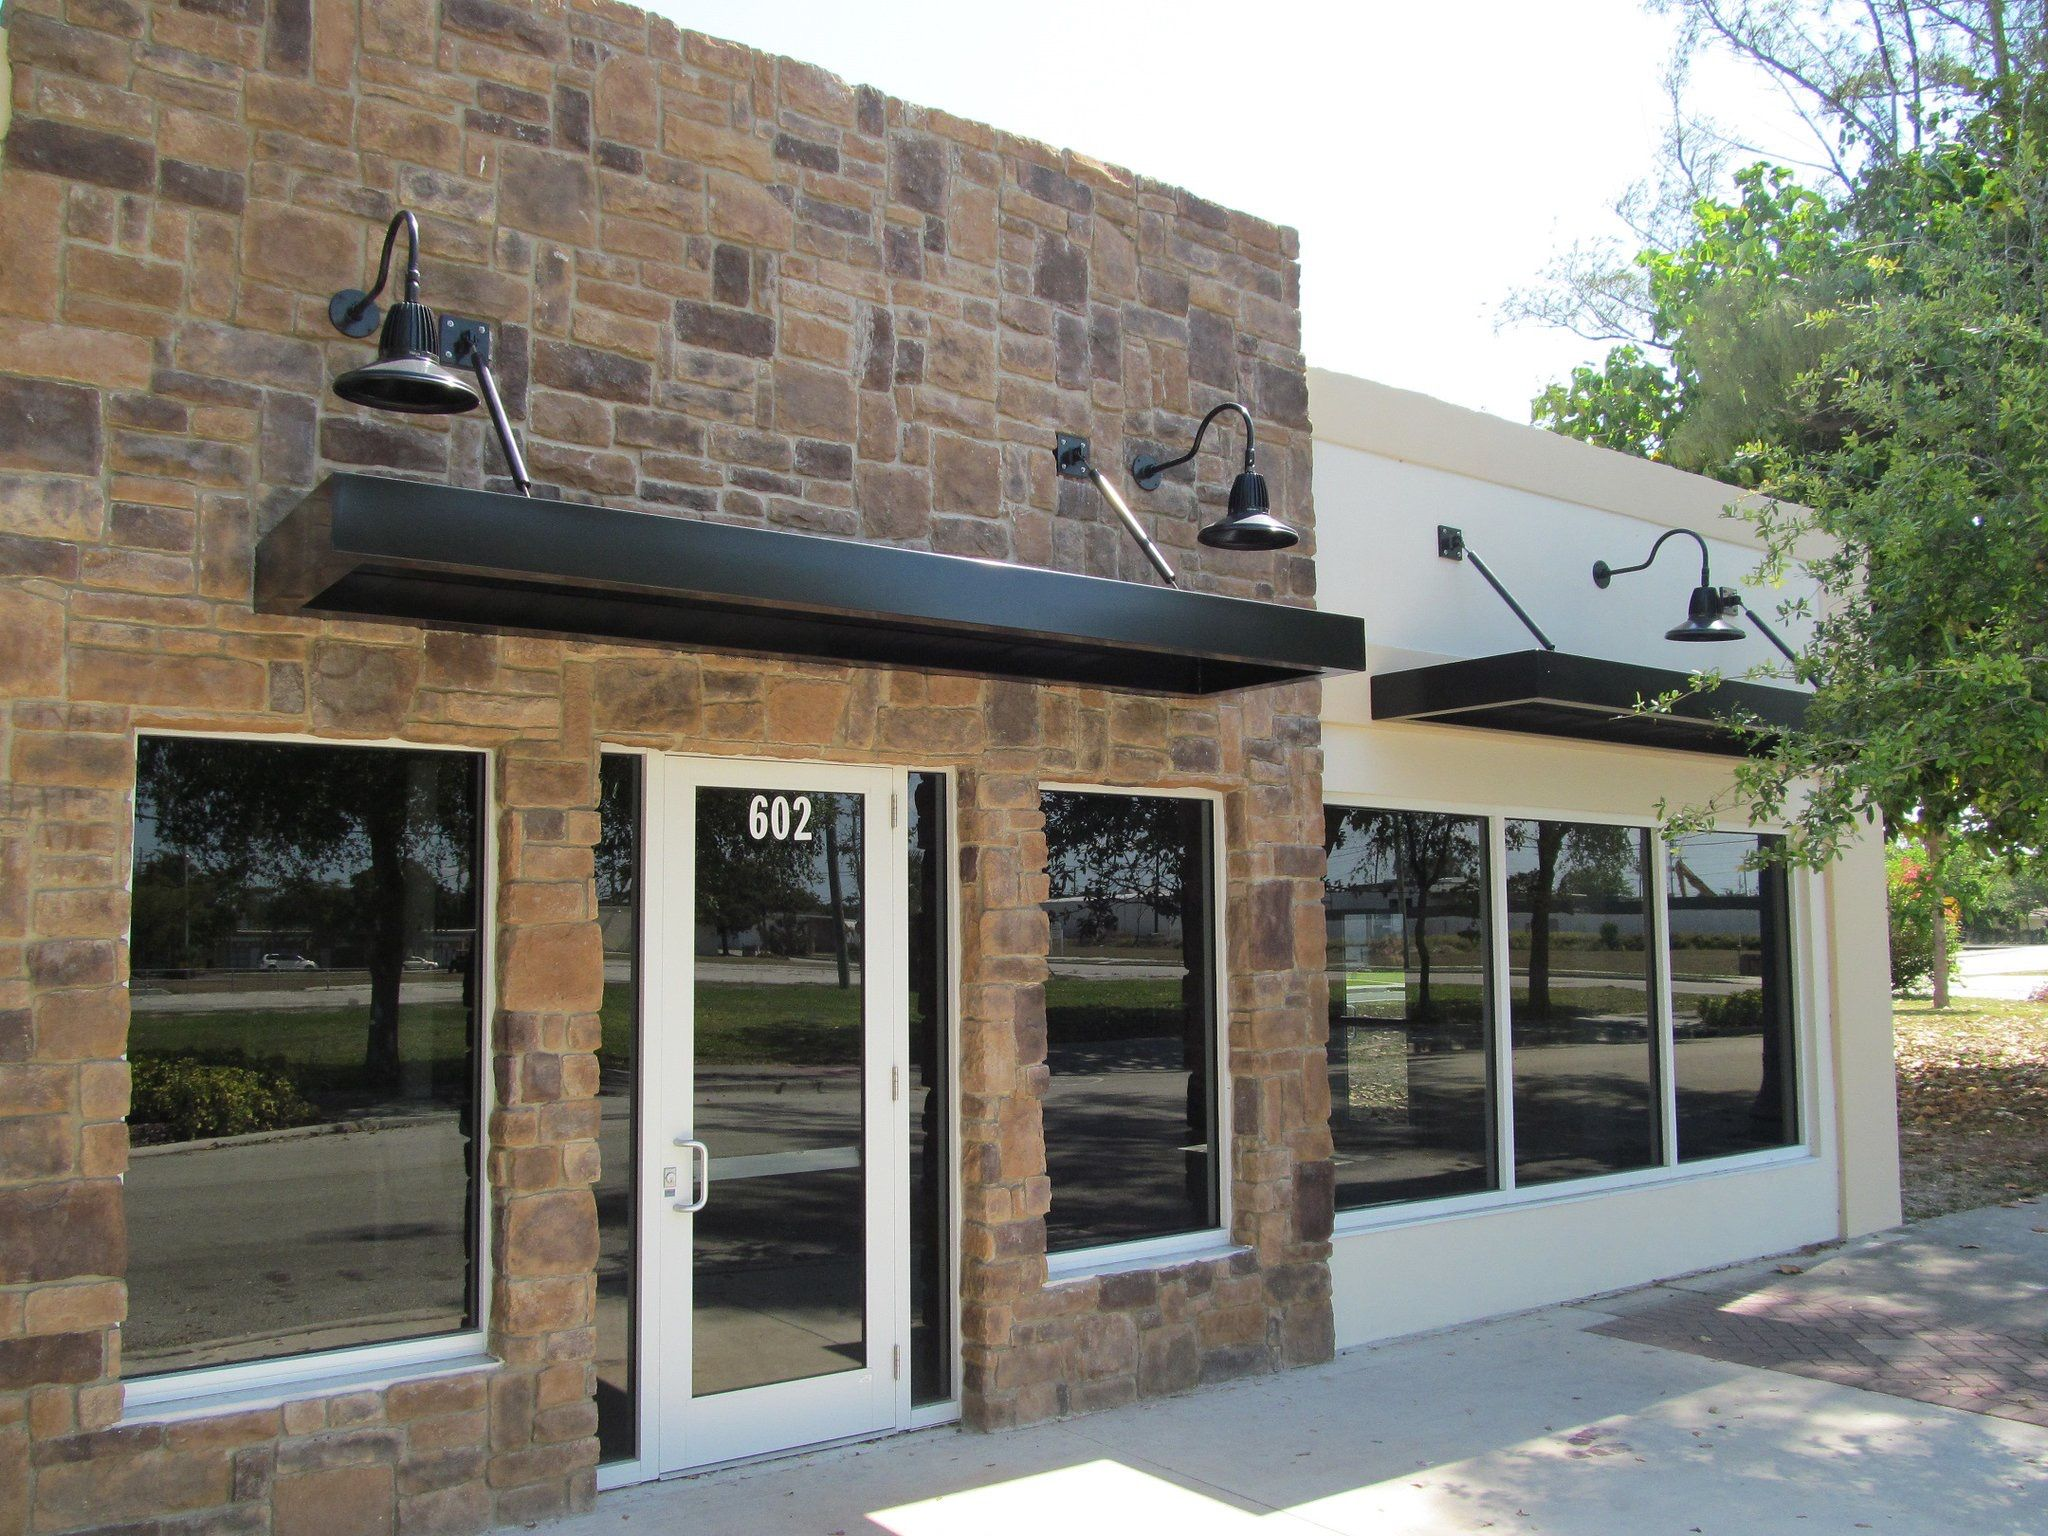 We Love To Build An Image For Your Complex With Our New Designs Awnings Datummetals Design Architecture Home Metal Awning Canopy Design Metal Canopy